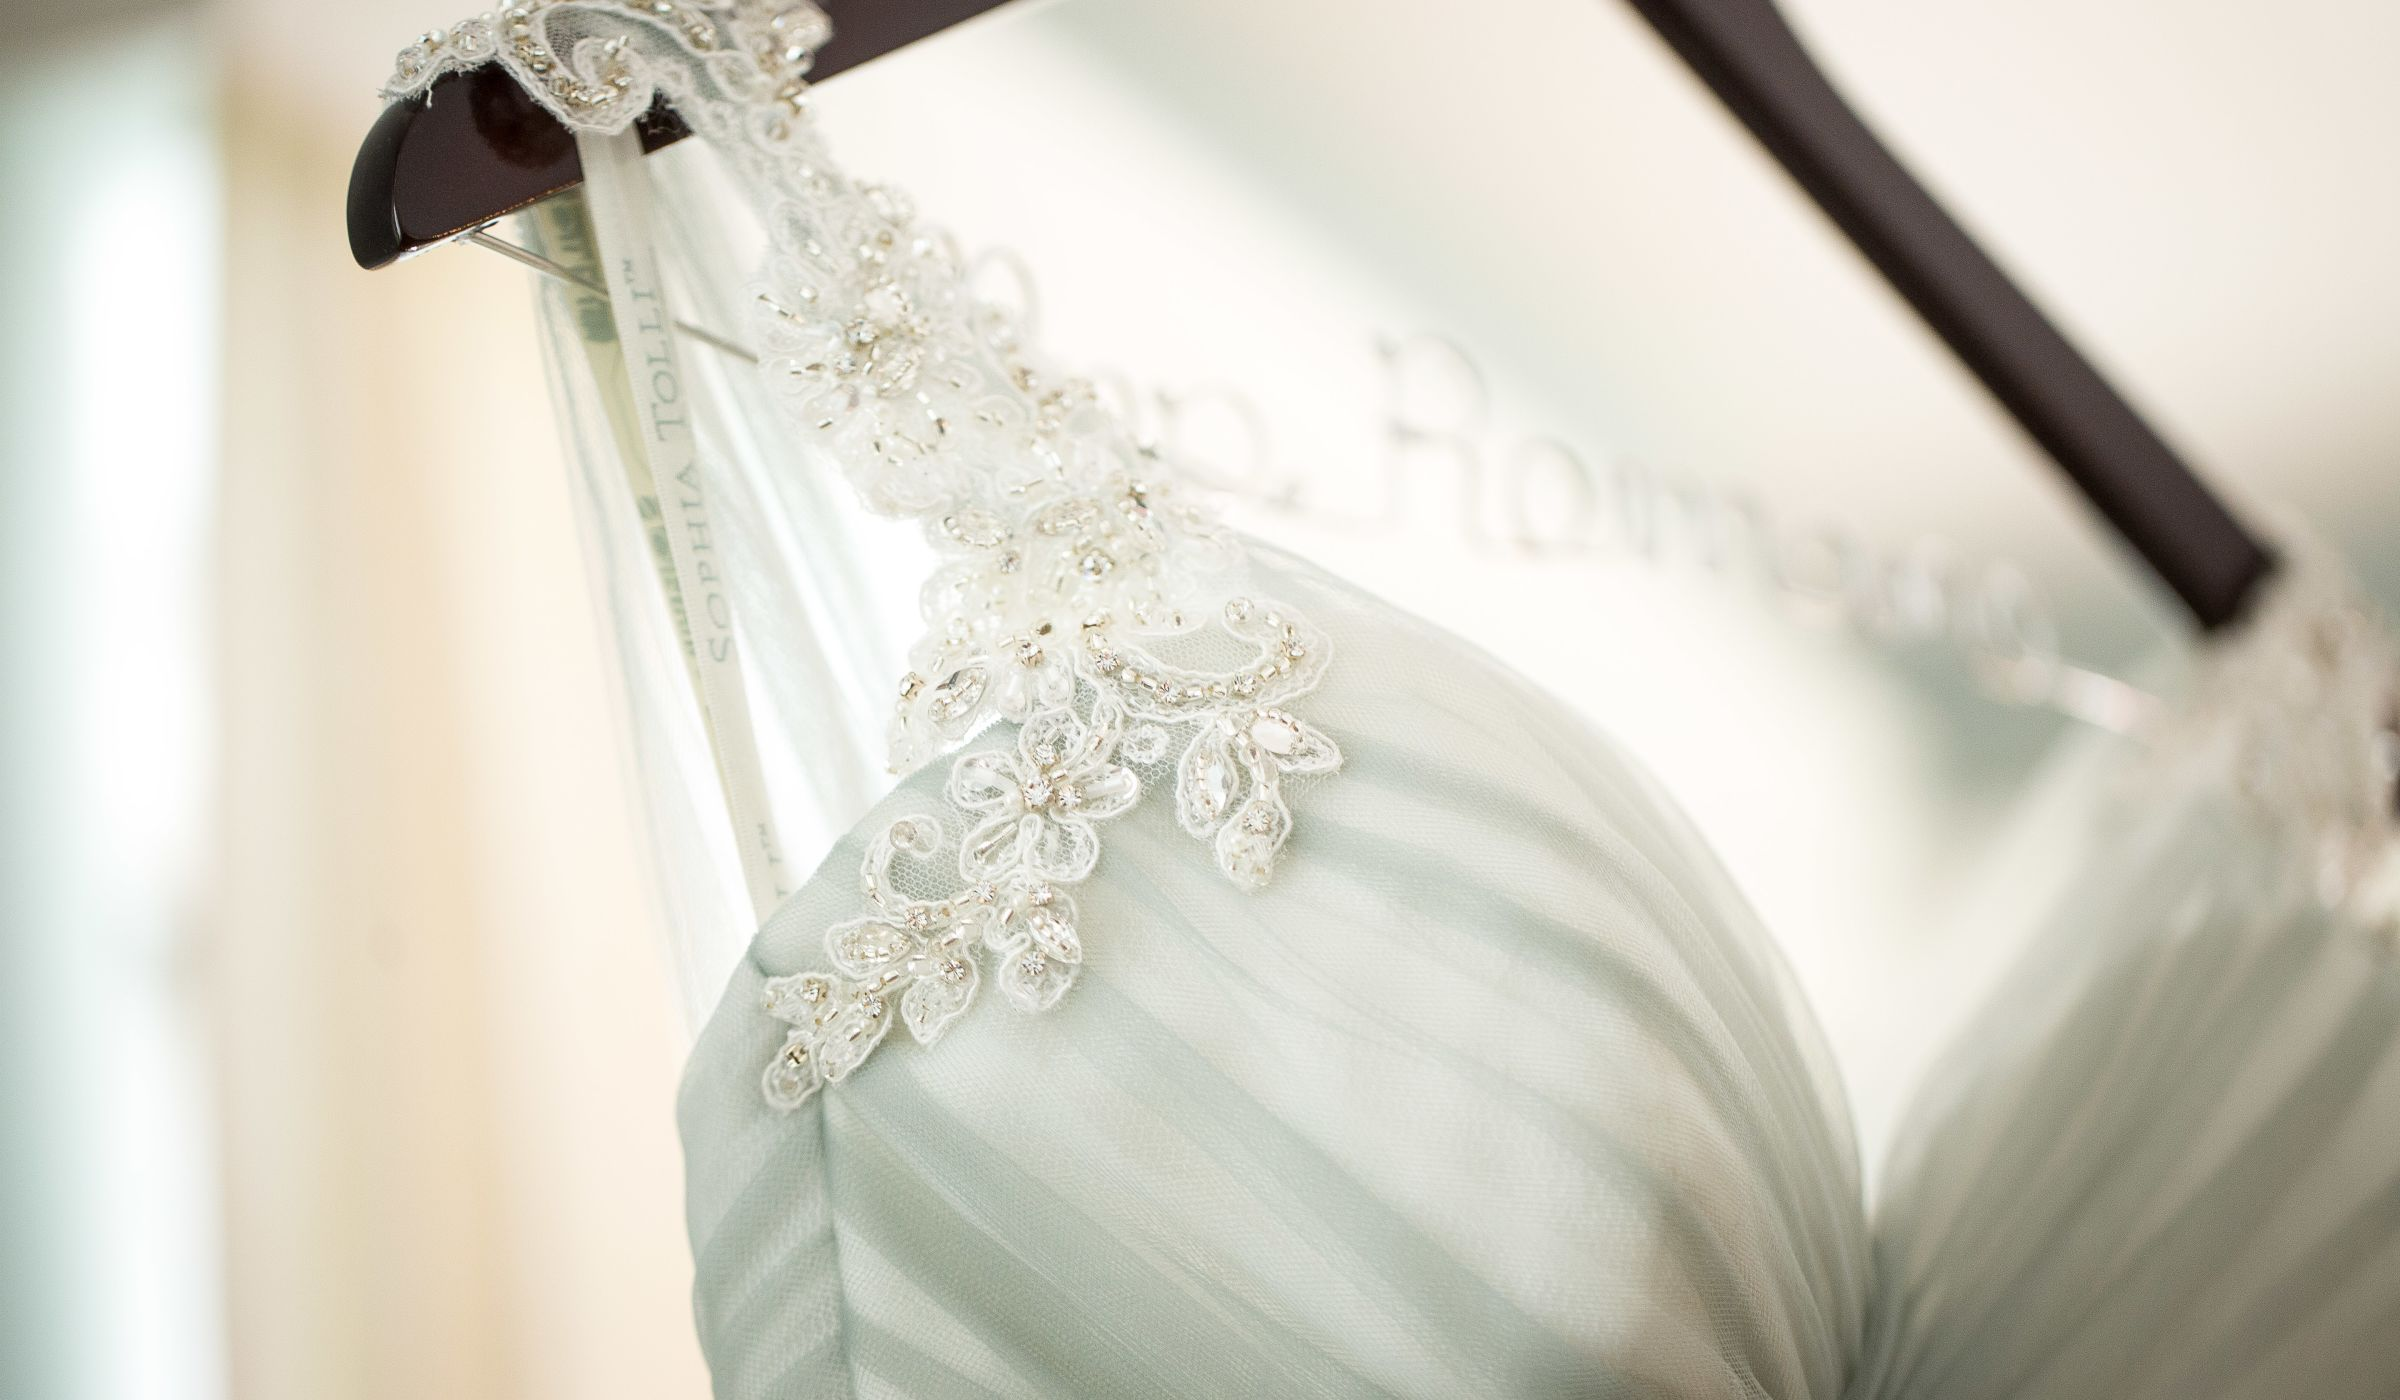 Here S A Crash Course In How To Find Wedding Dress You Truly Love